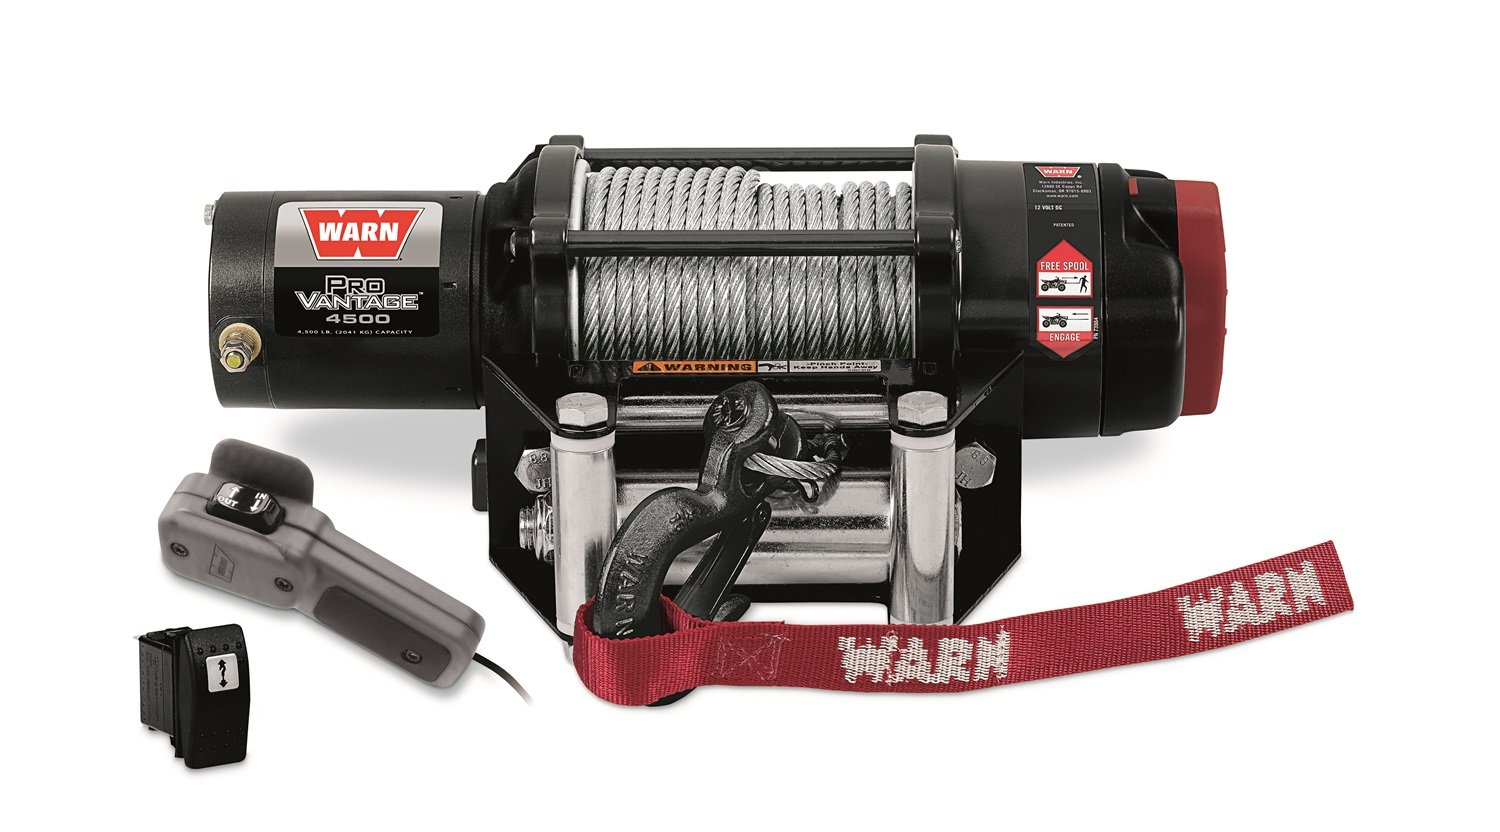 WARN 90450 ProVantage 4500 Winch - 4500 lb. Capacity by WARN